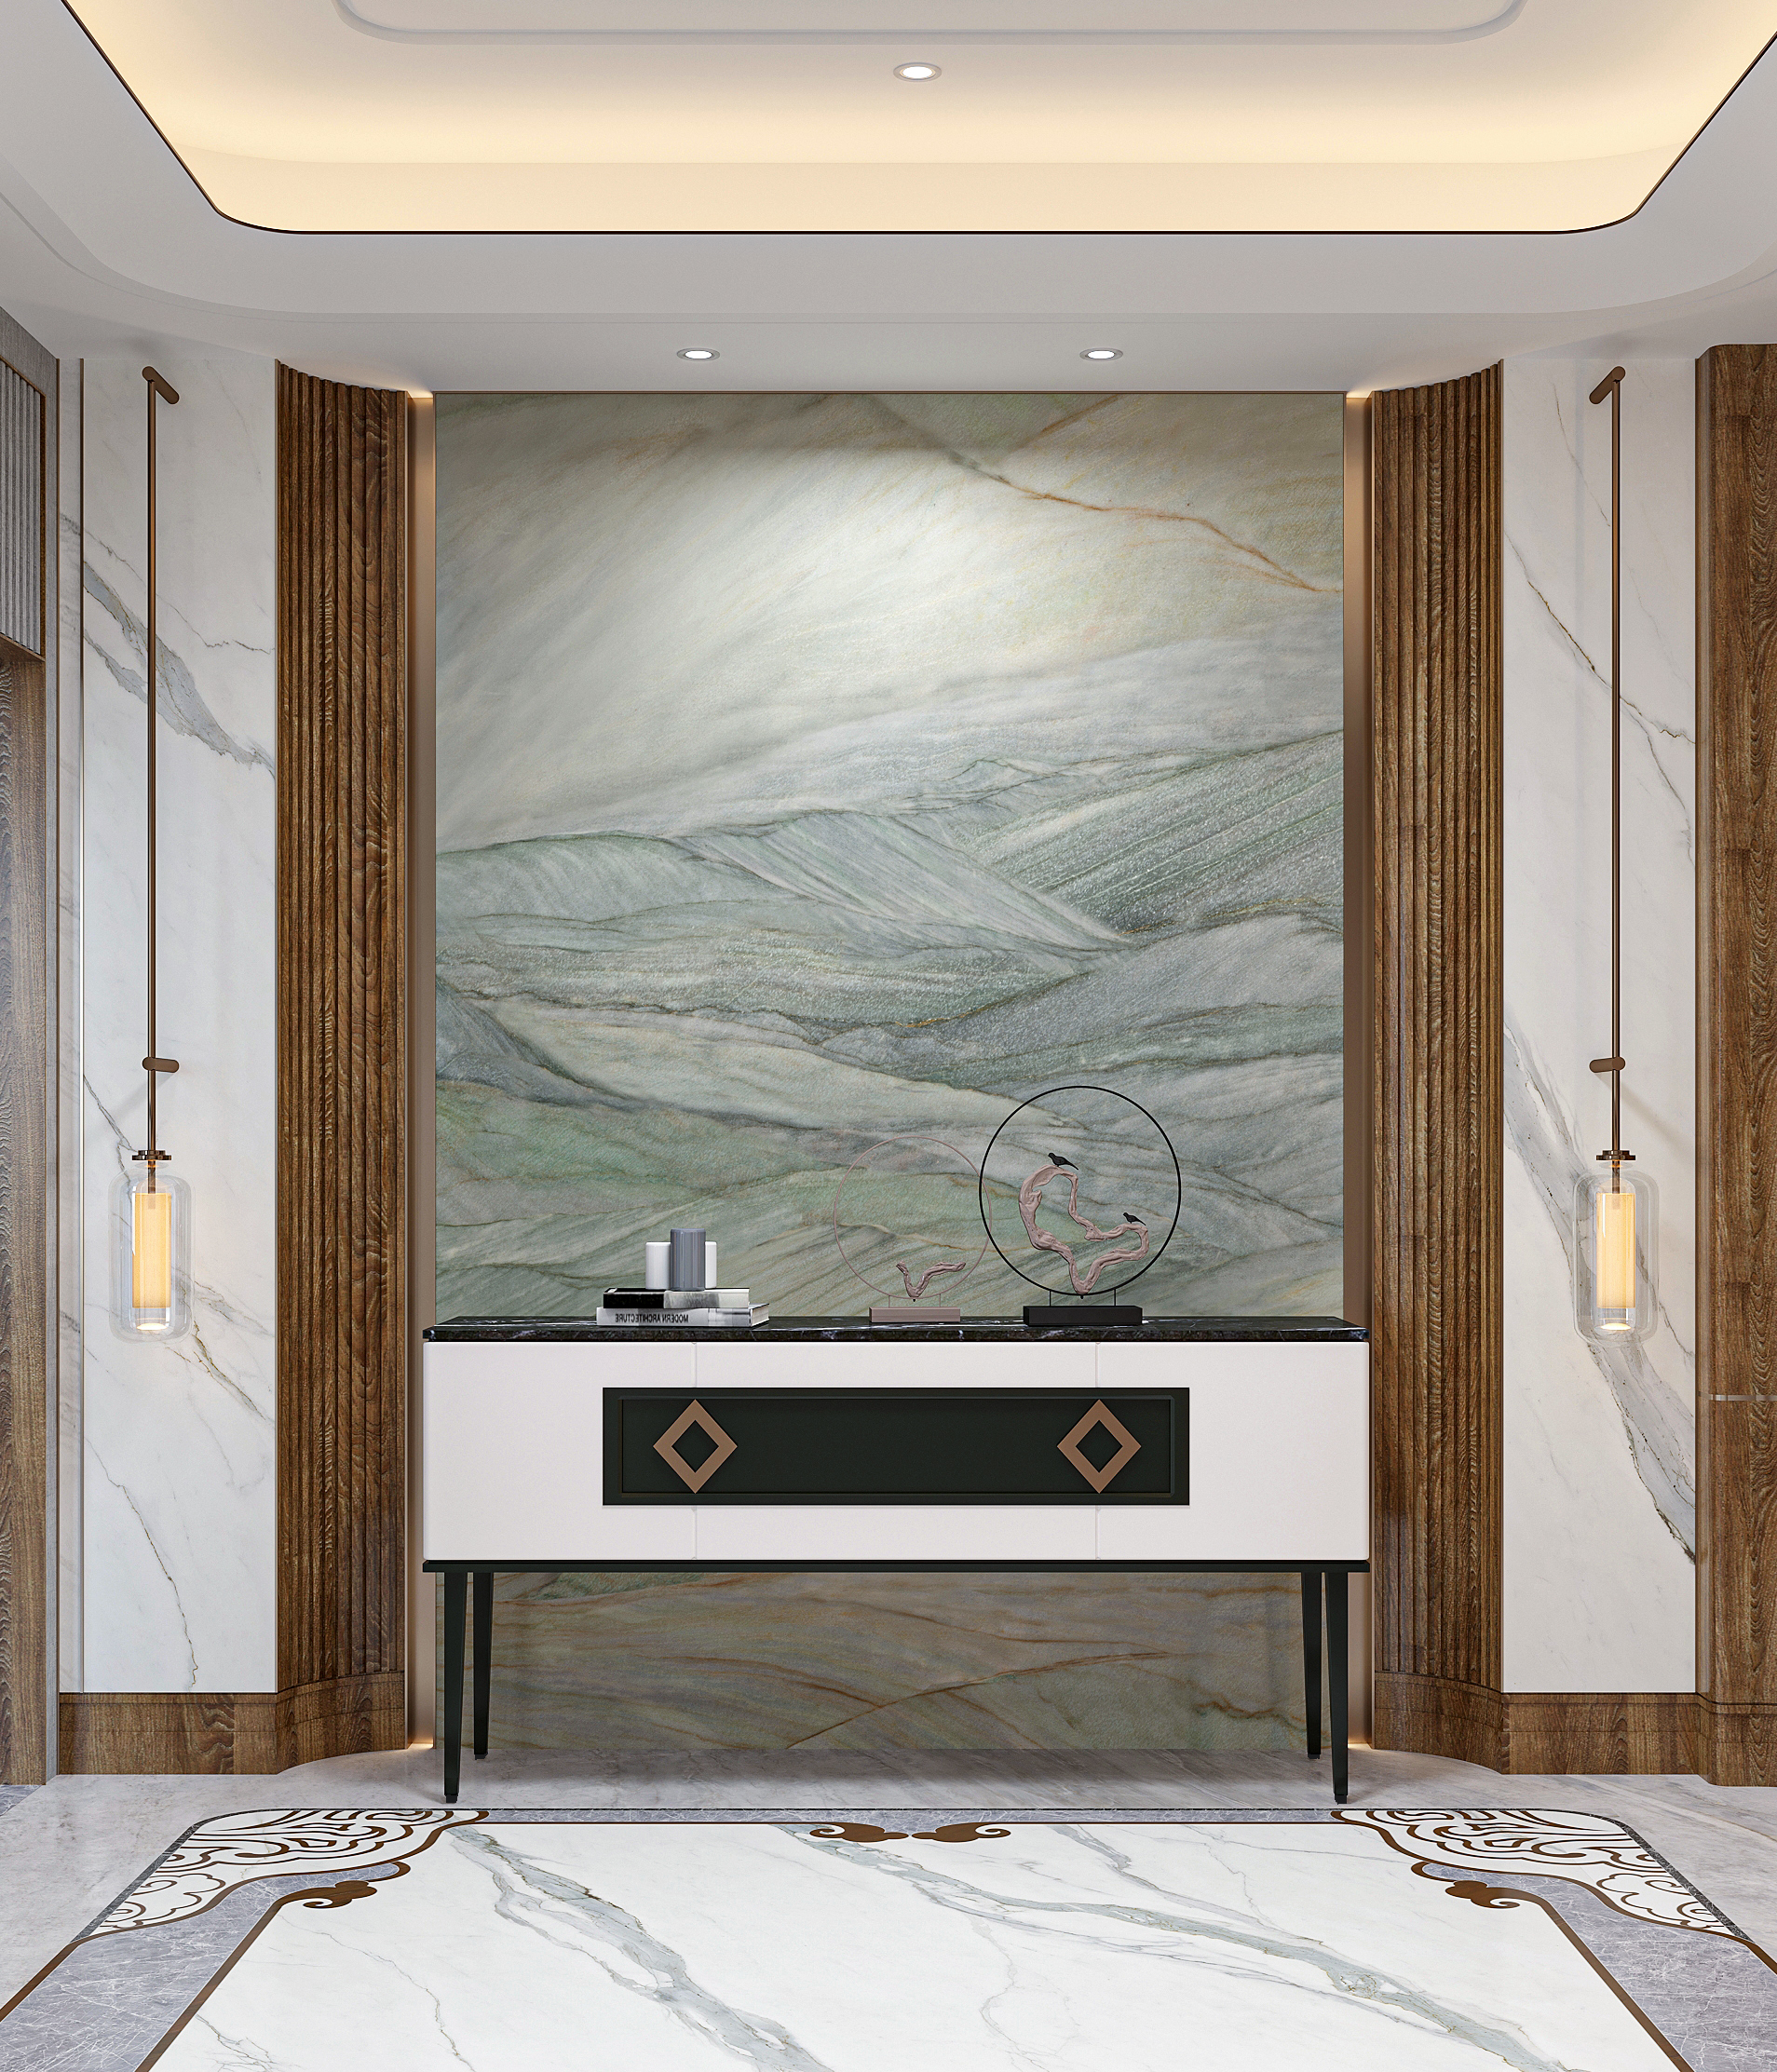 Verde Lapponia Marble Tiles Manufacturers, Verde Lapponia Marble Tiles Factory, Supply Verde Lapponia Marble Tiles